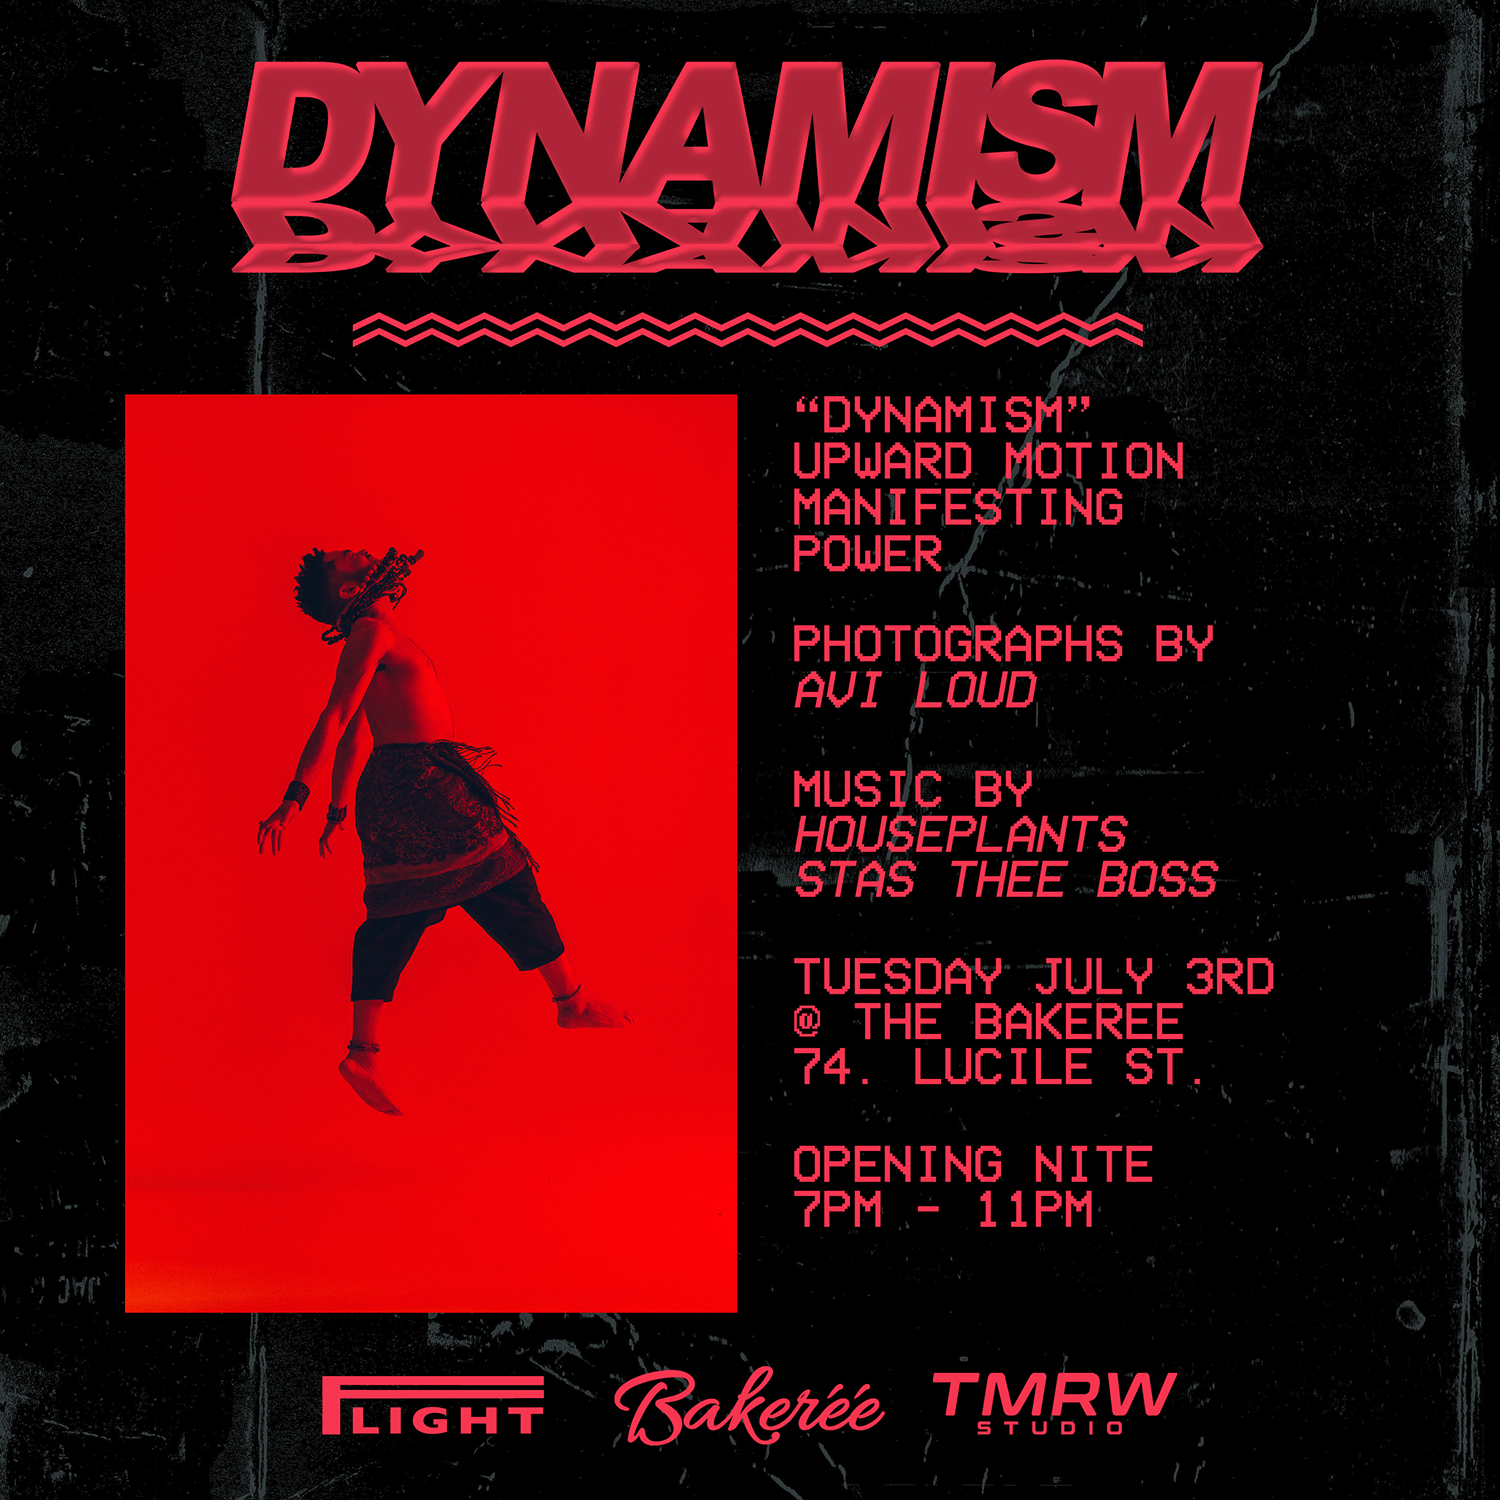 DYNAMISM_FLYER_MAIN_AVI_v2_500.jpg